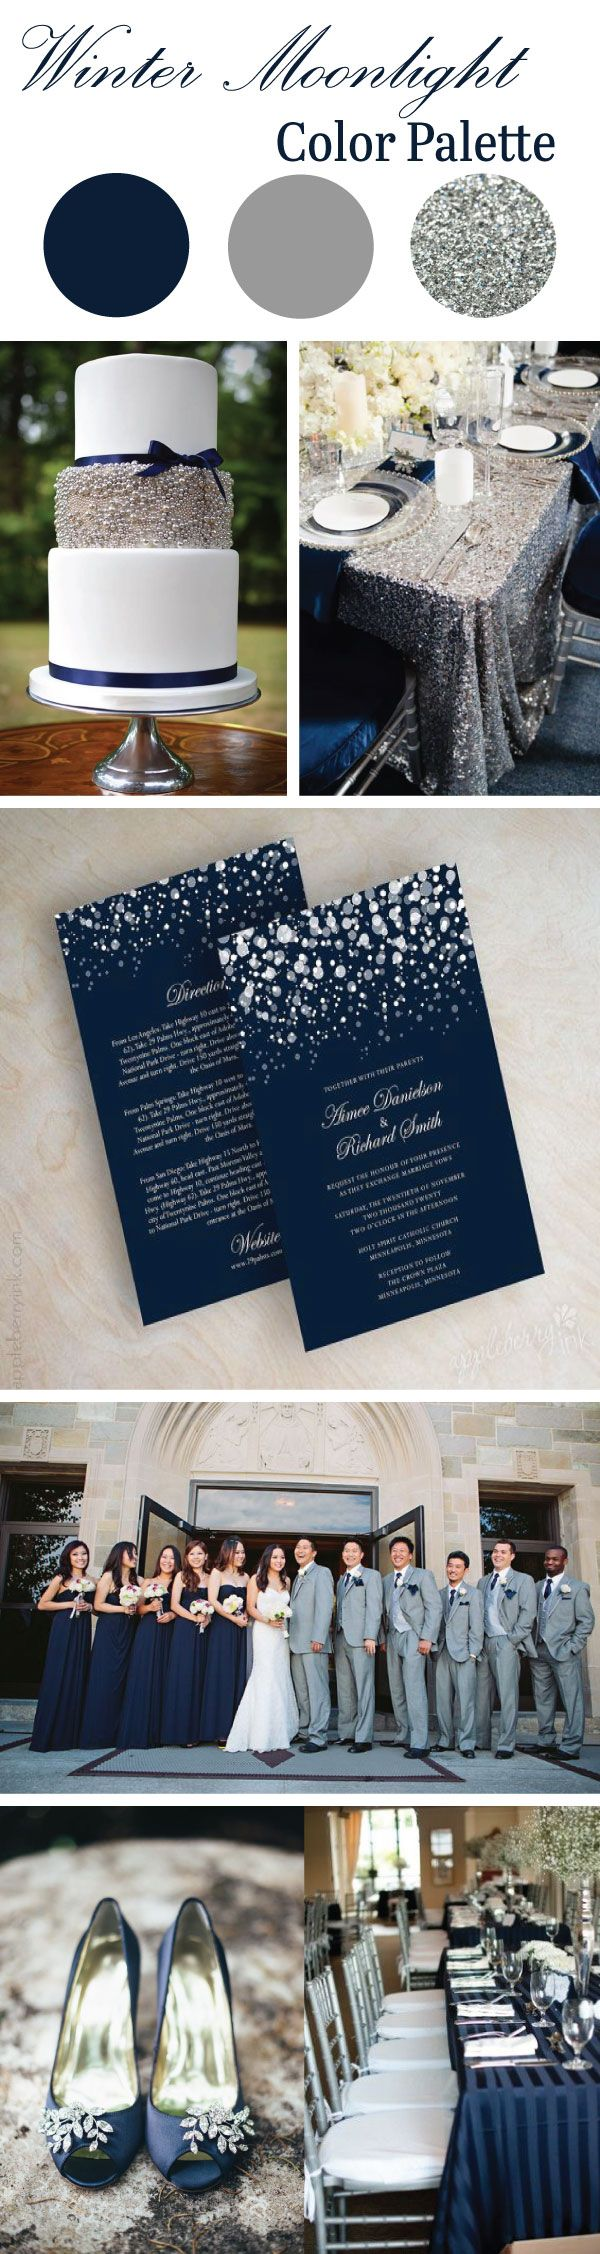 Winter Moonlight Wedding Color Palette